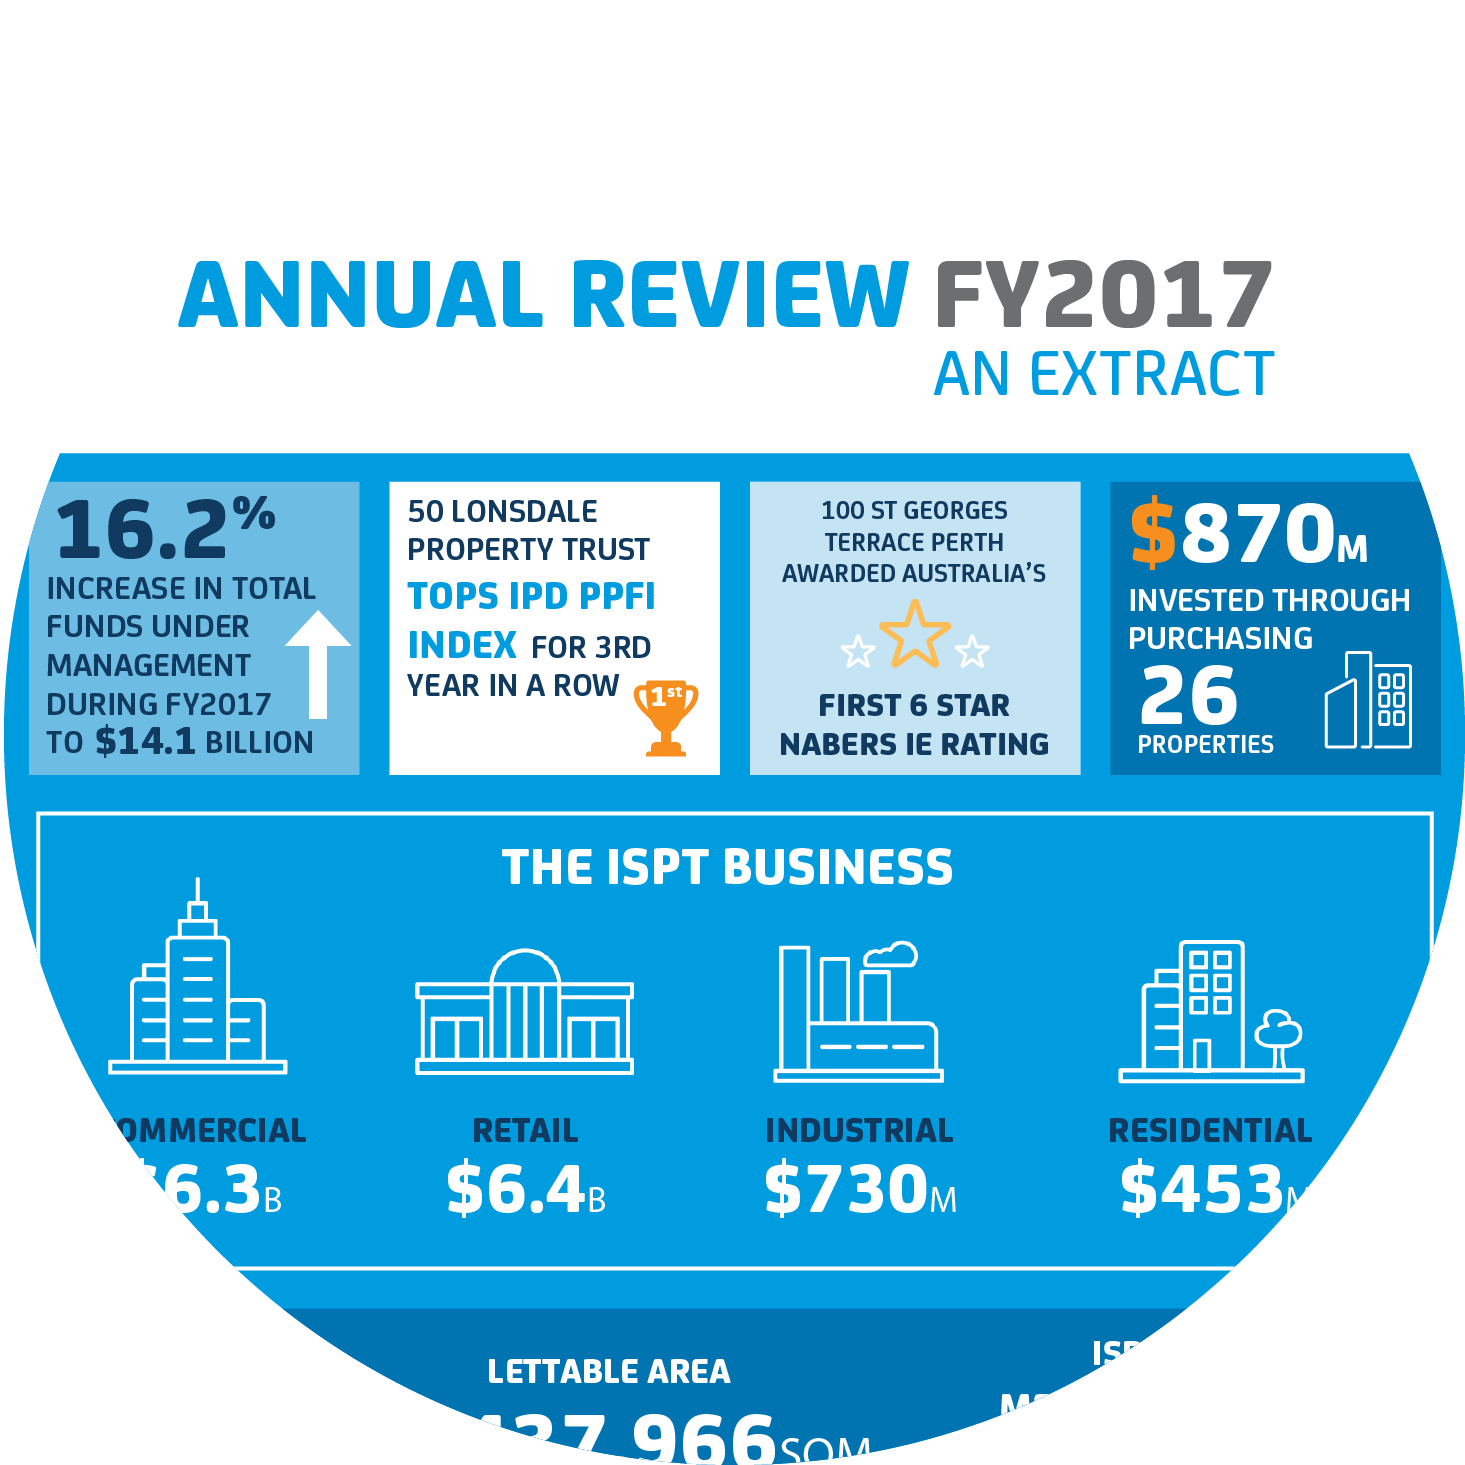 ISPT Annual Review Extract 2017